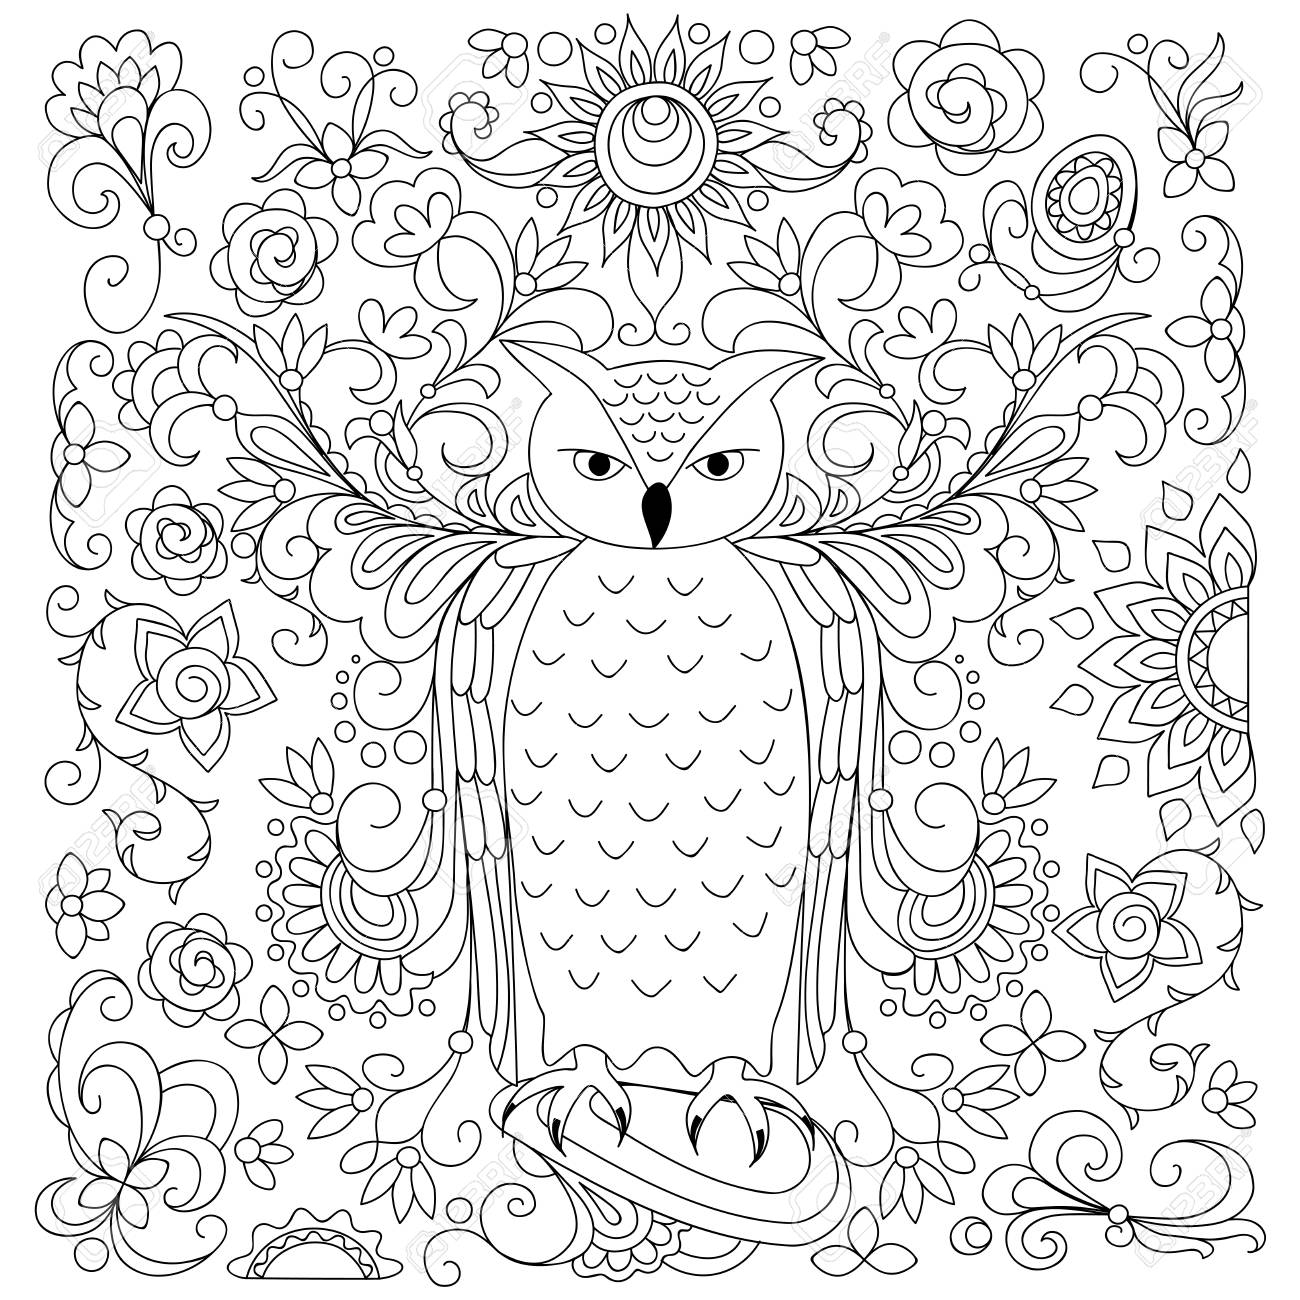 Coloring Page With Hand Drawn Owl Among Floral Pattern For Children And Adult Anti Stress